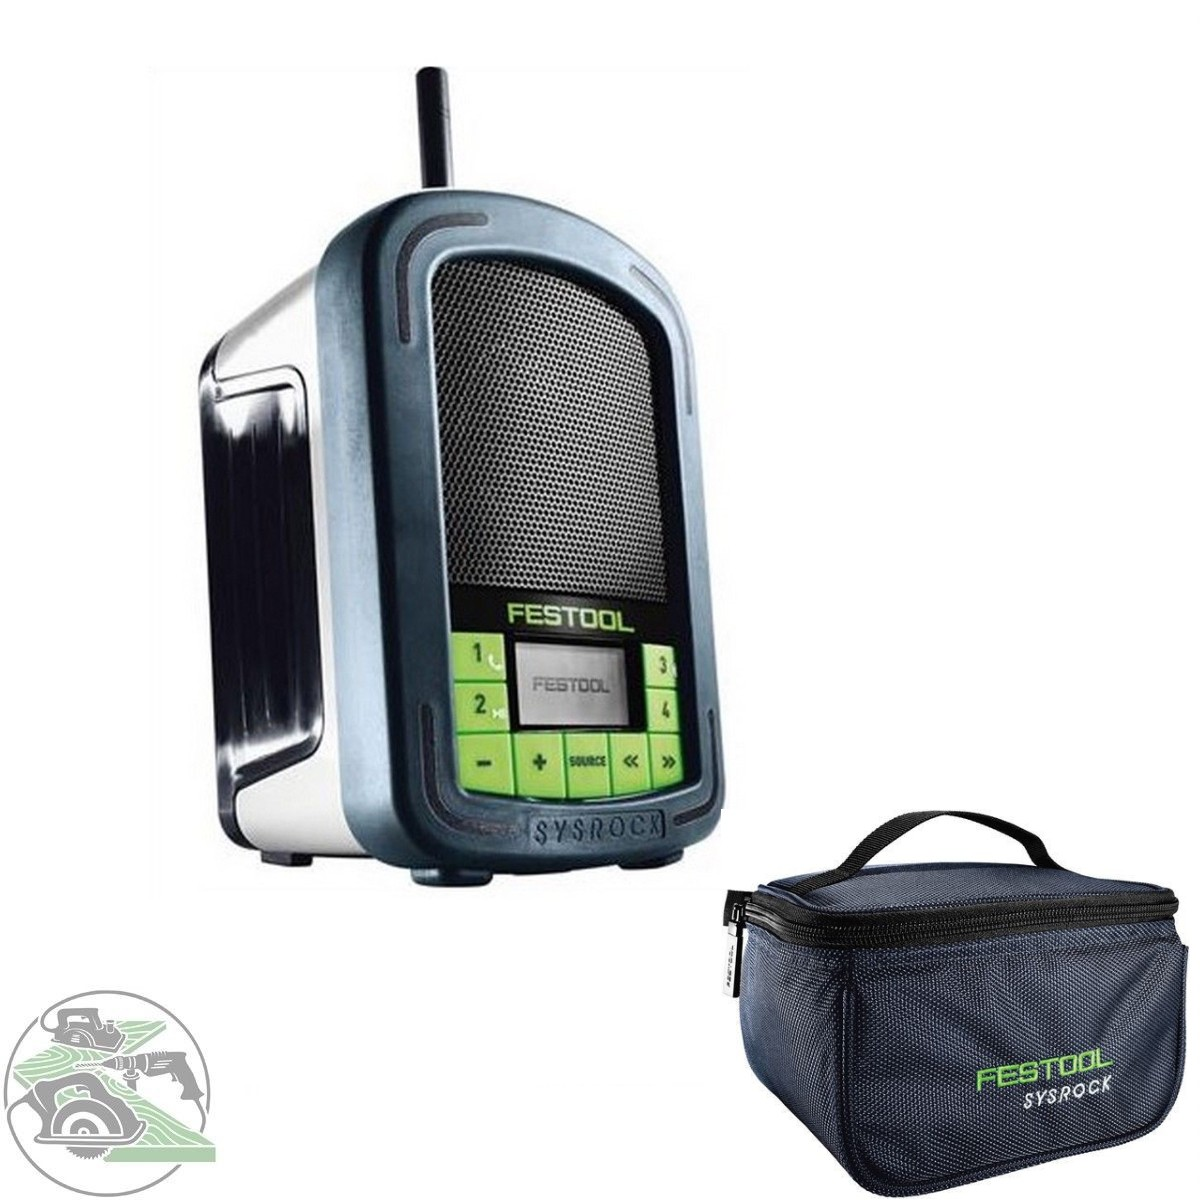 festool baustellenradio sysrock br 10 200183 radio bluetooth freisprechfunktion von festool bei. Black Bedroom Furniture Sets. Home Design Ideas